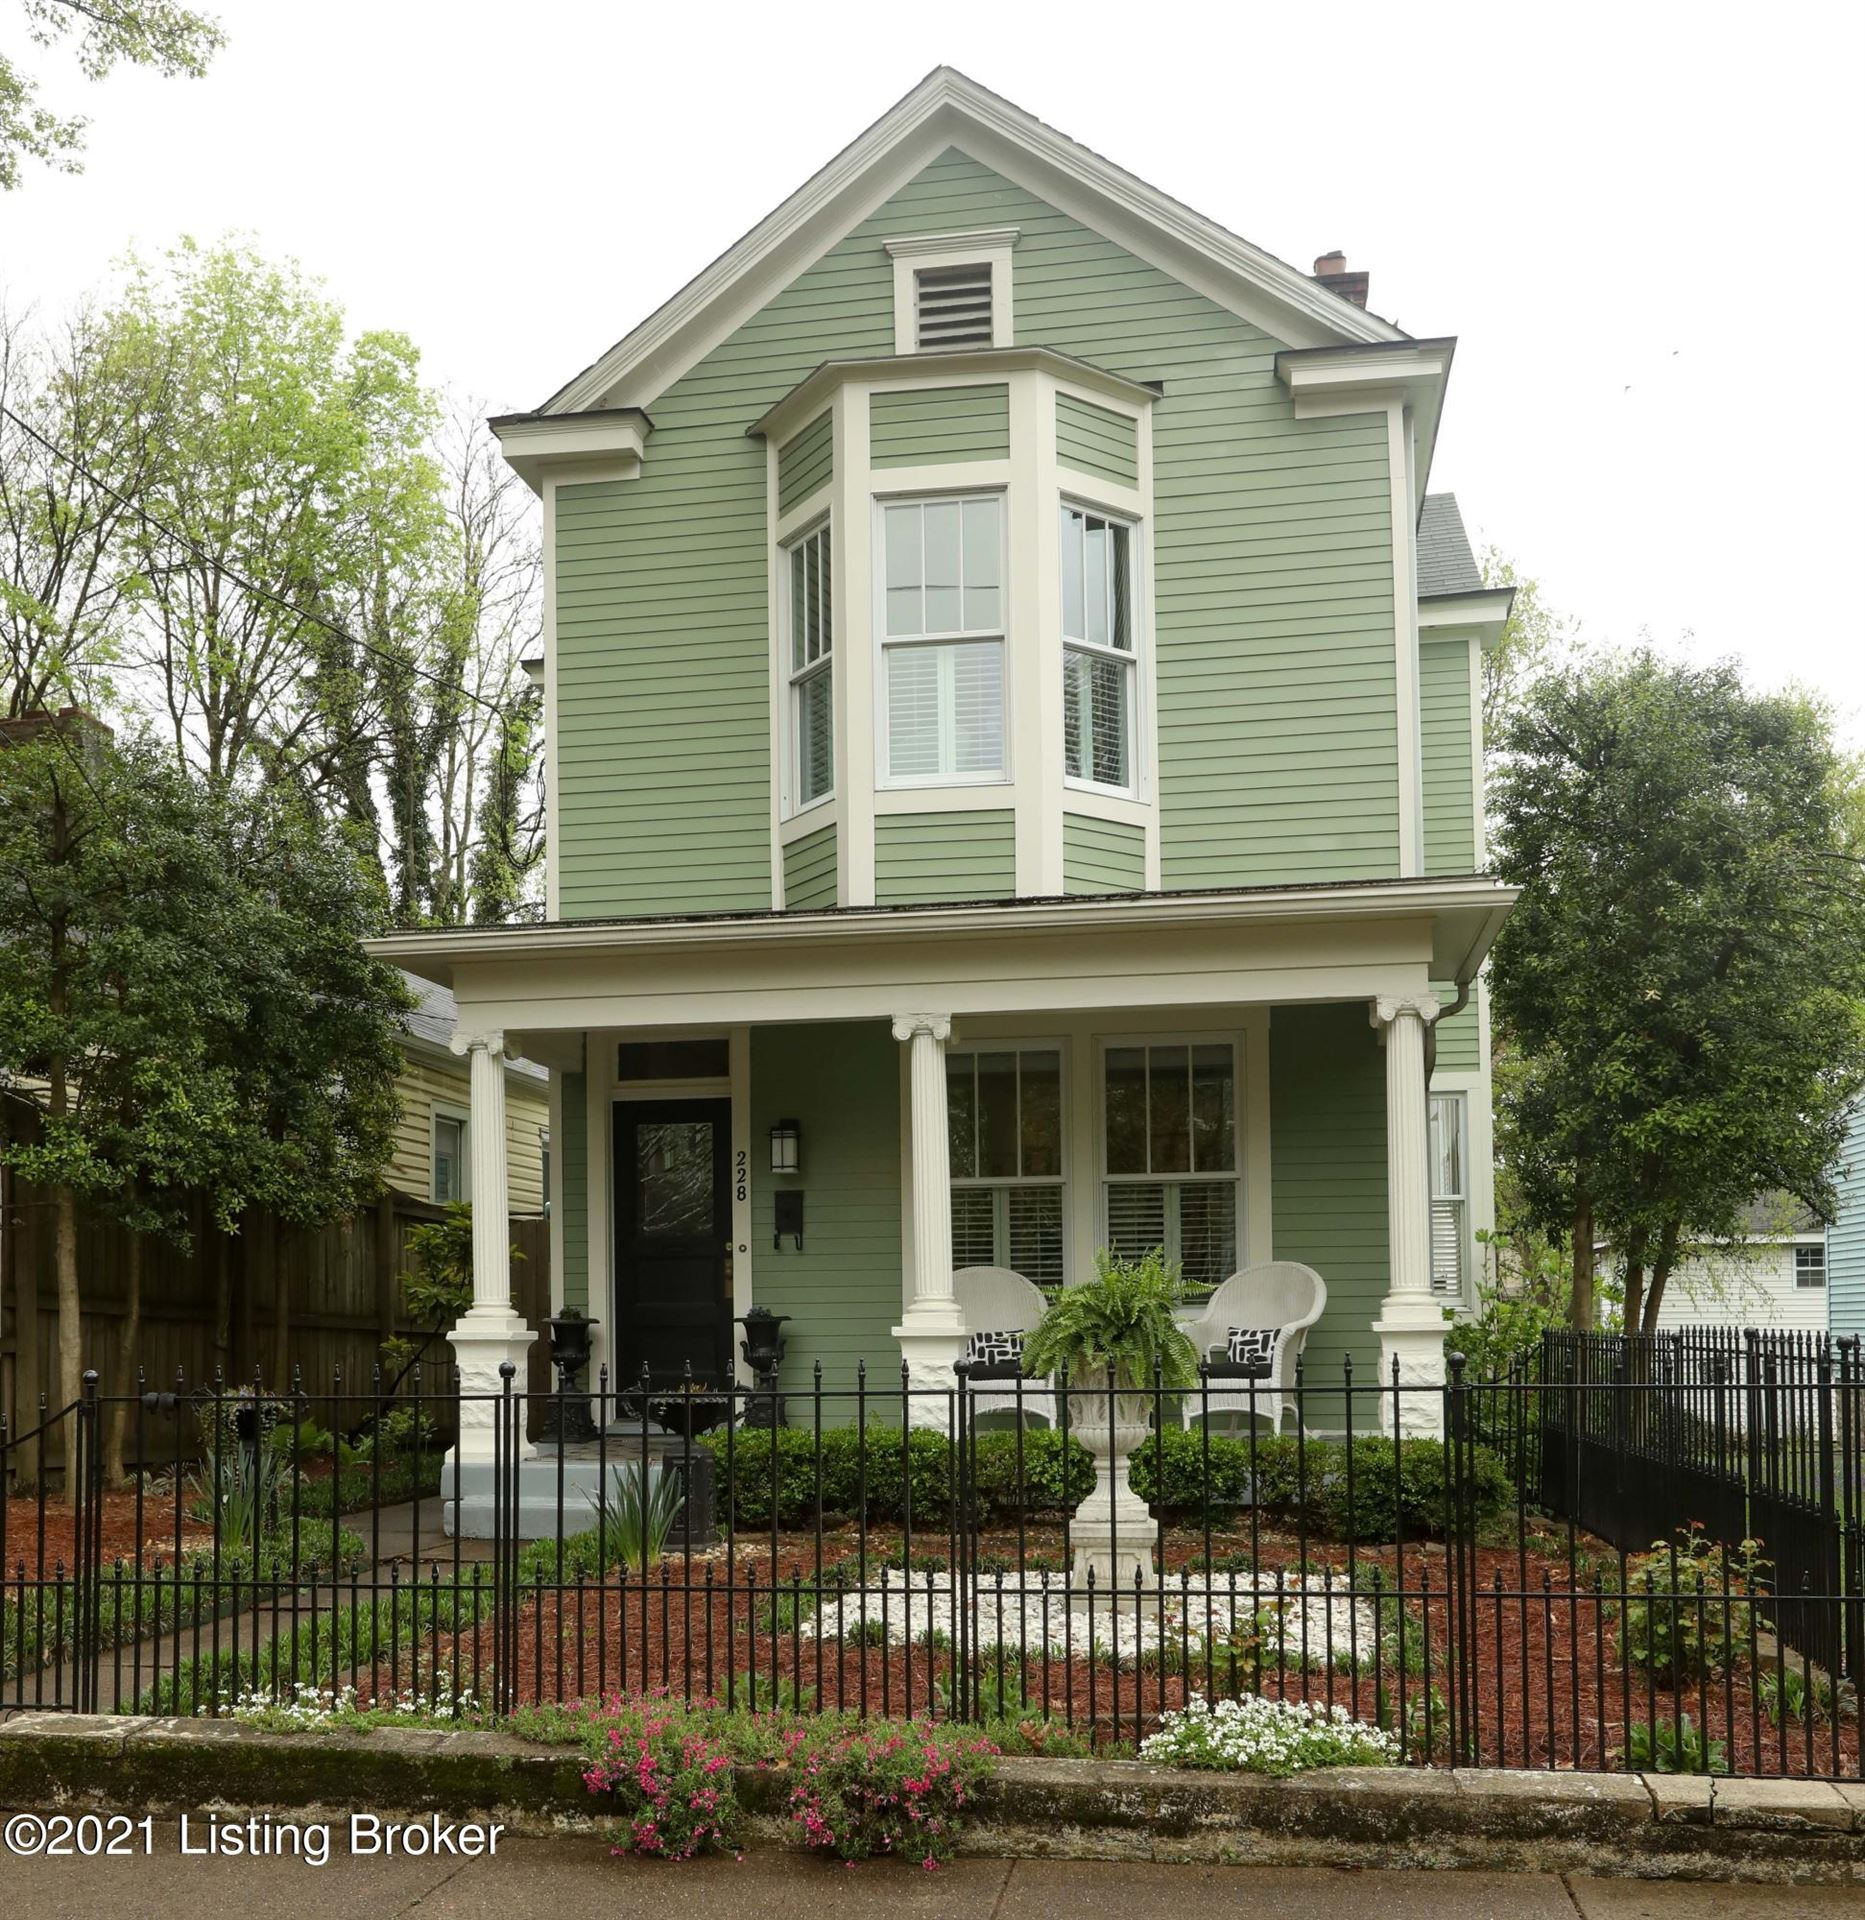 Photo for 228 S Bayly Ave, Louisville, KY 40206 (MLS # 1583733)